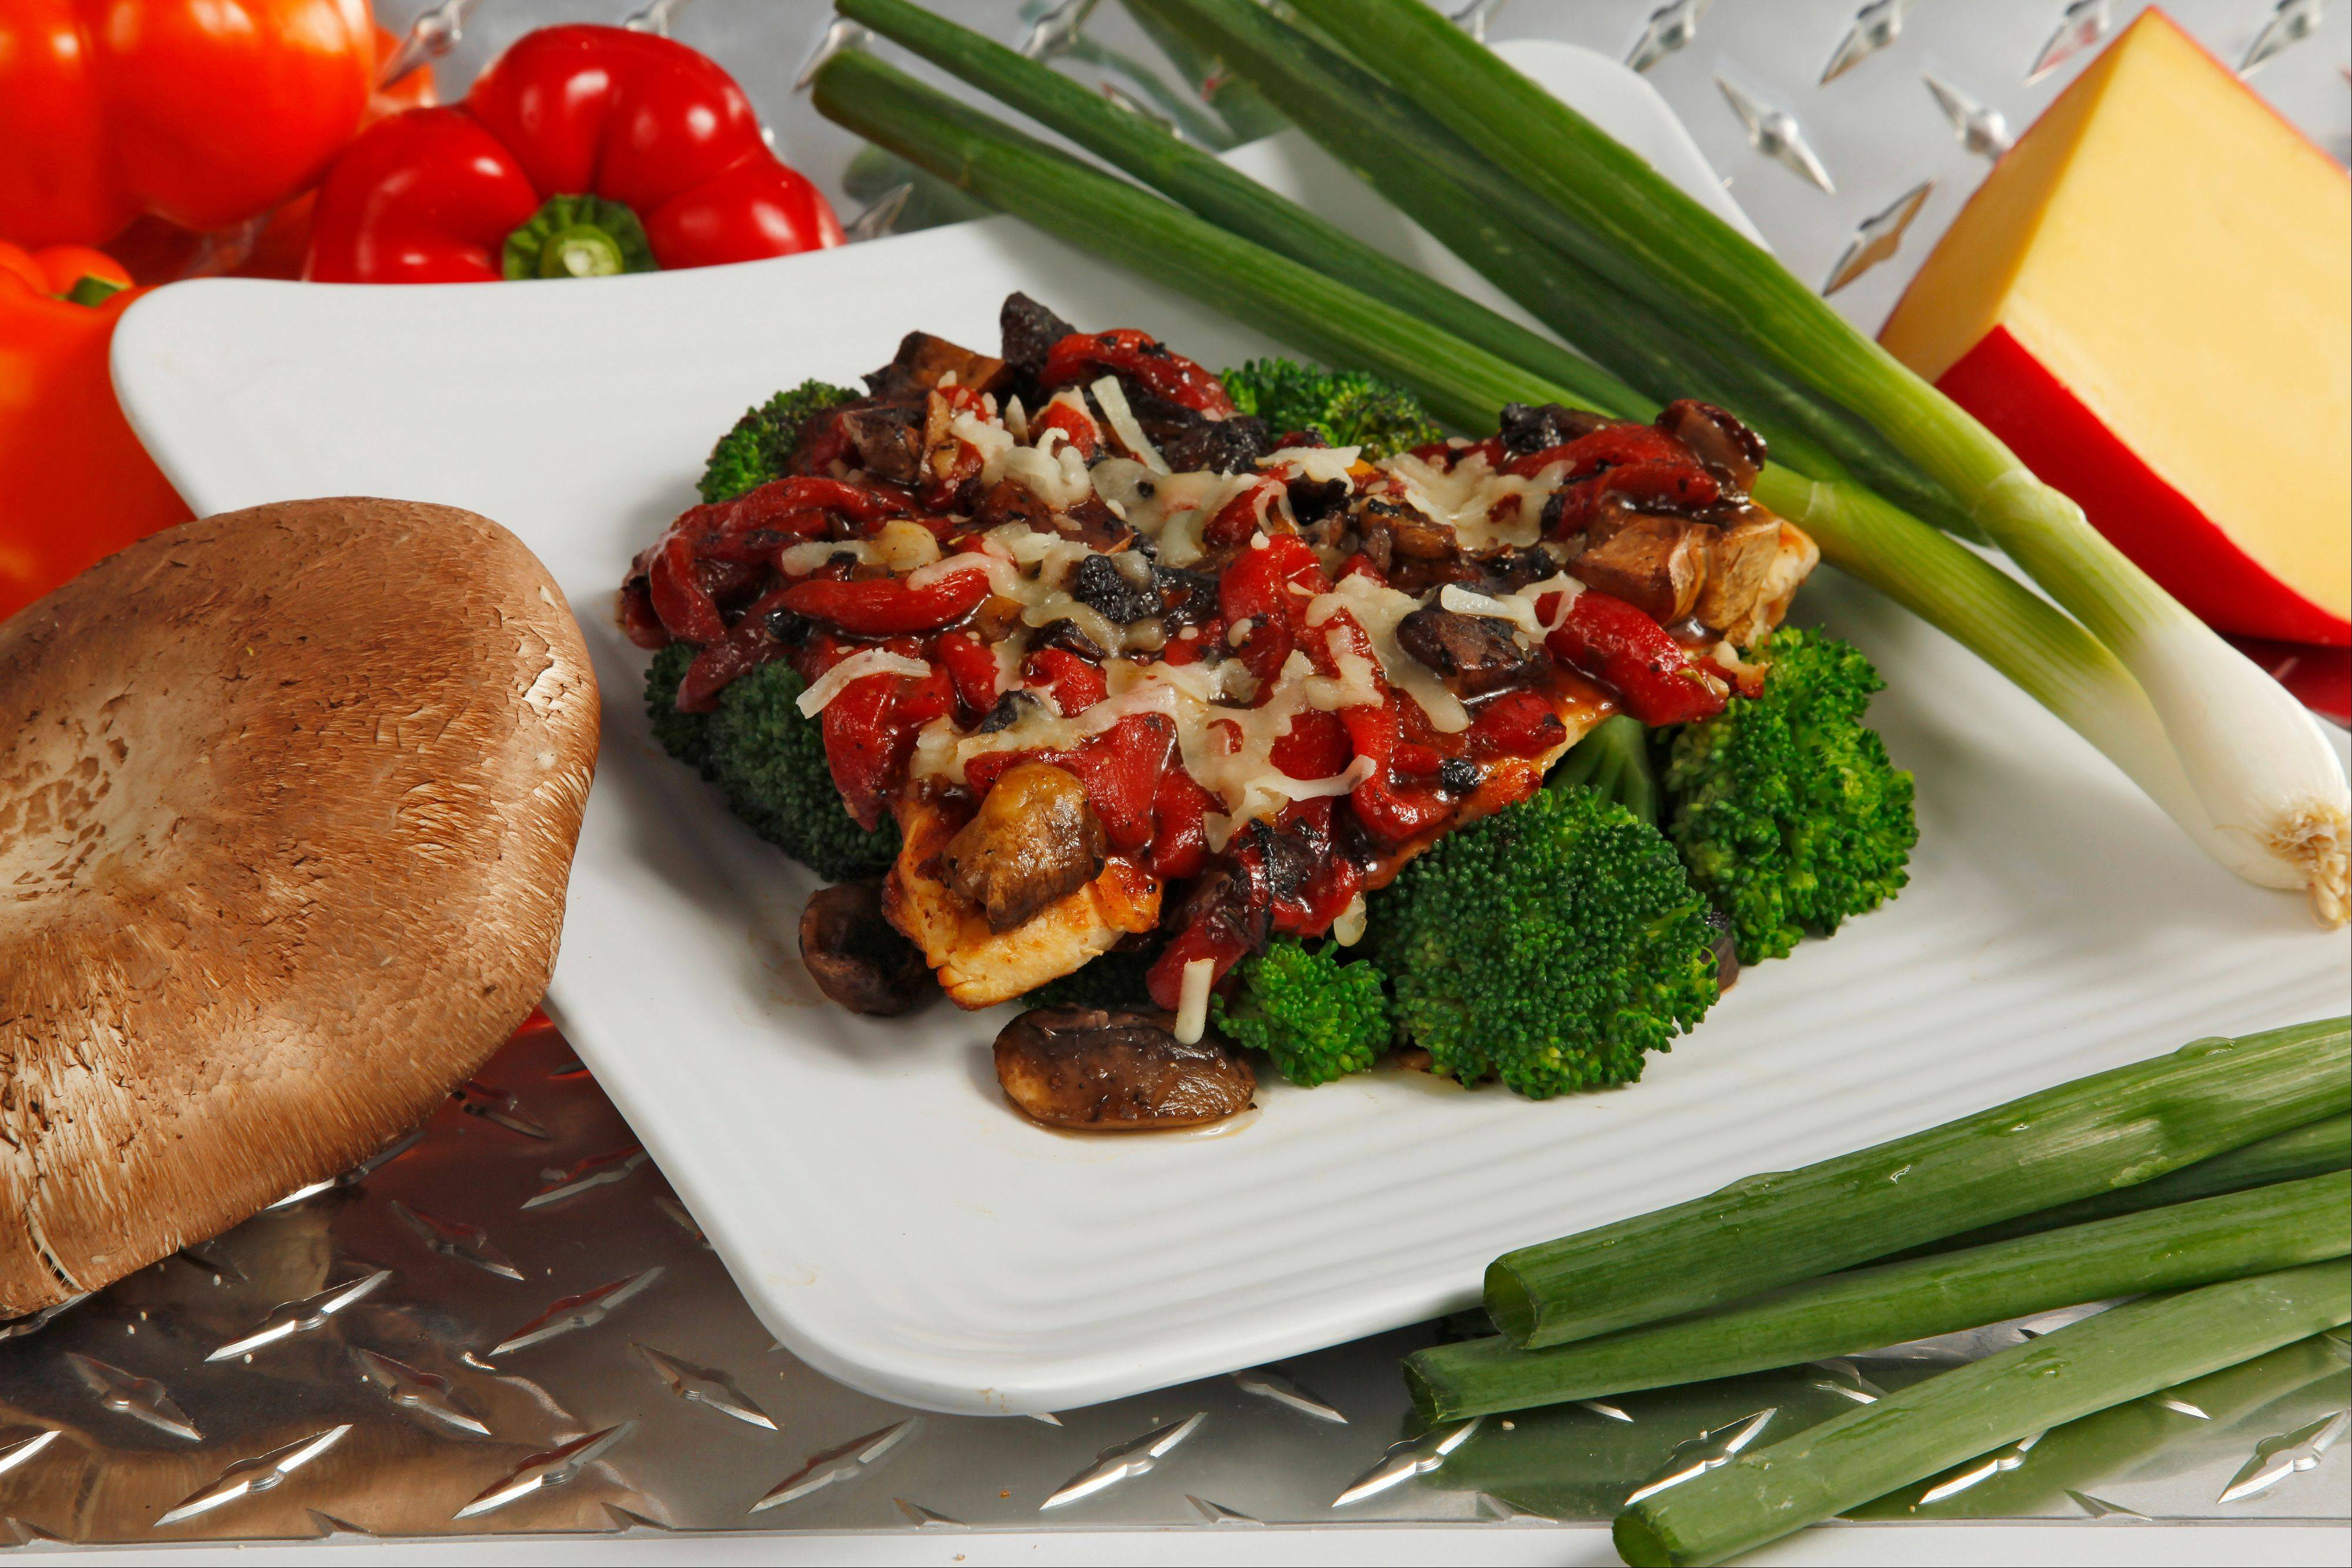 Muscle Maker Grill focuses on lean-protein-based offerings like the Godfather, a grilled chicken breast, portabella mushrooms, red roasted peppers and reduced-fat mozzarella with a gluten- and fat-free balsamic vinaigrette for $9.99.